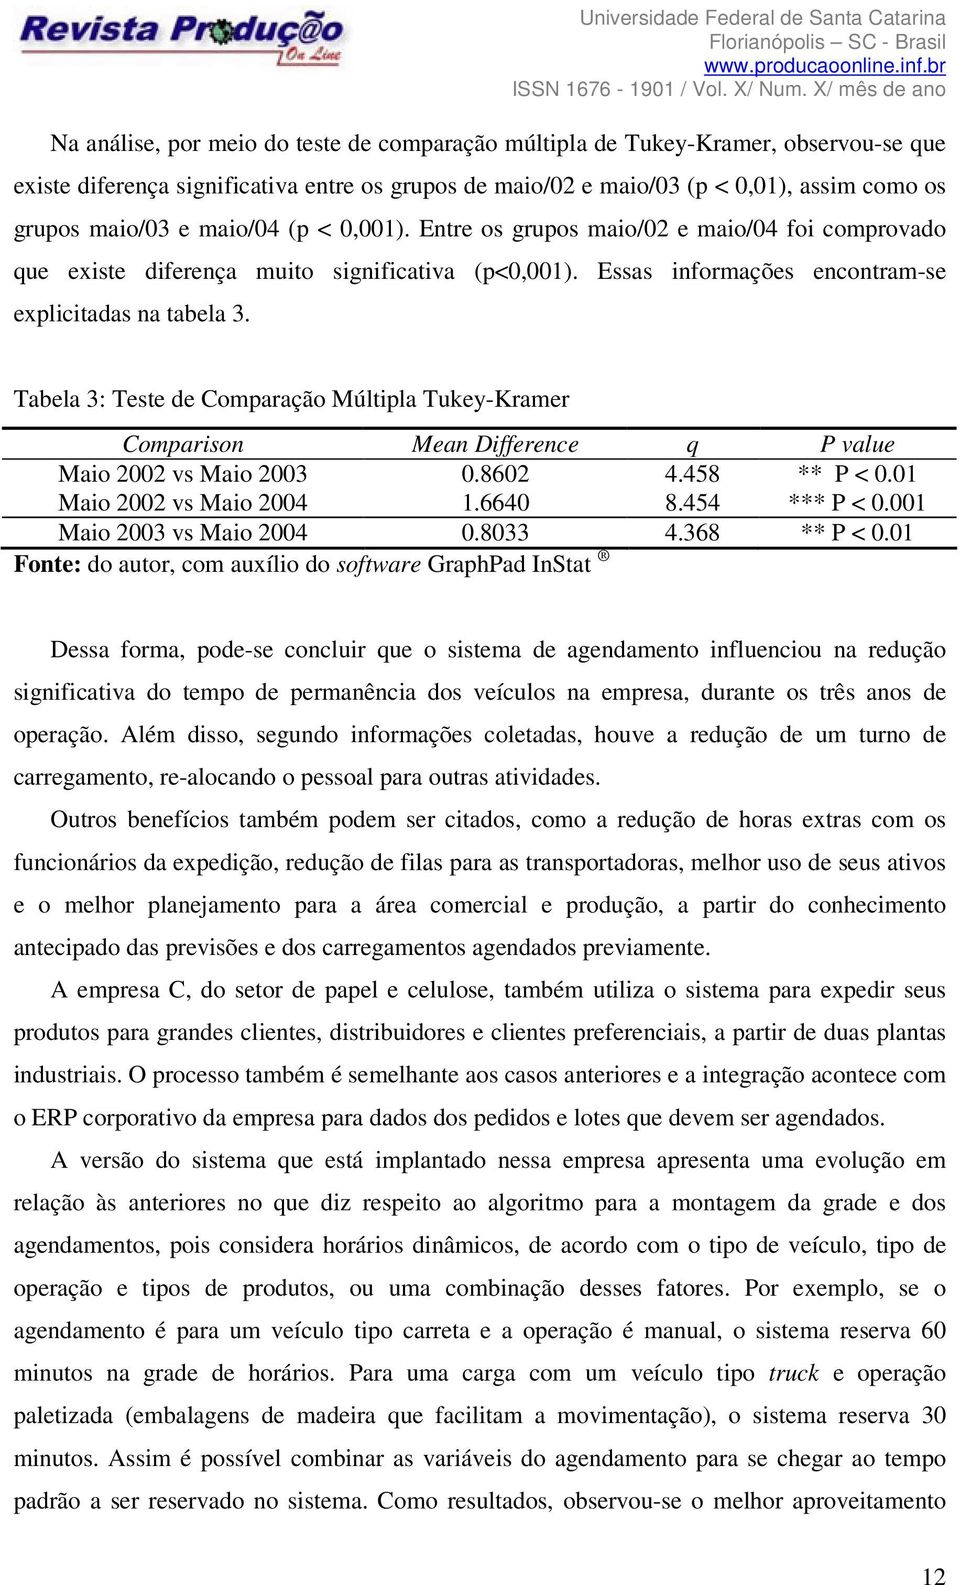 Tabela 3: Teste de Comparação Múltipla Tukey-Kramer Comparison Mean Difference q P value Maio 2002 vs Maio 2003 0.8602 4.458 ** P < 0.01 Maio 2002 vs Maio 2004 1.6640 8.454 *** P < 0.